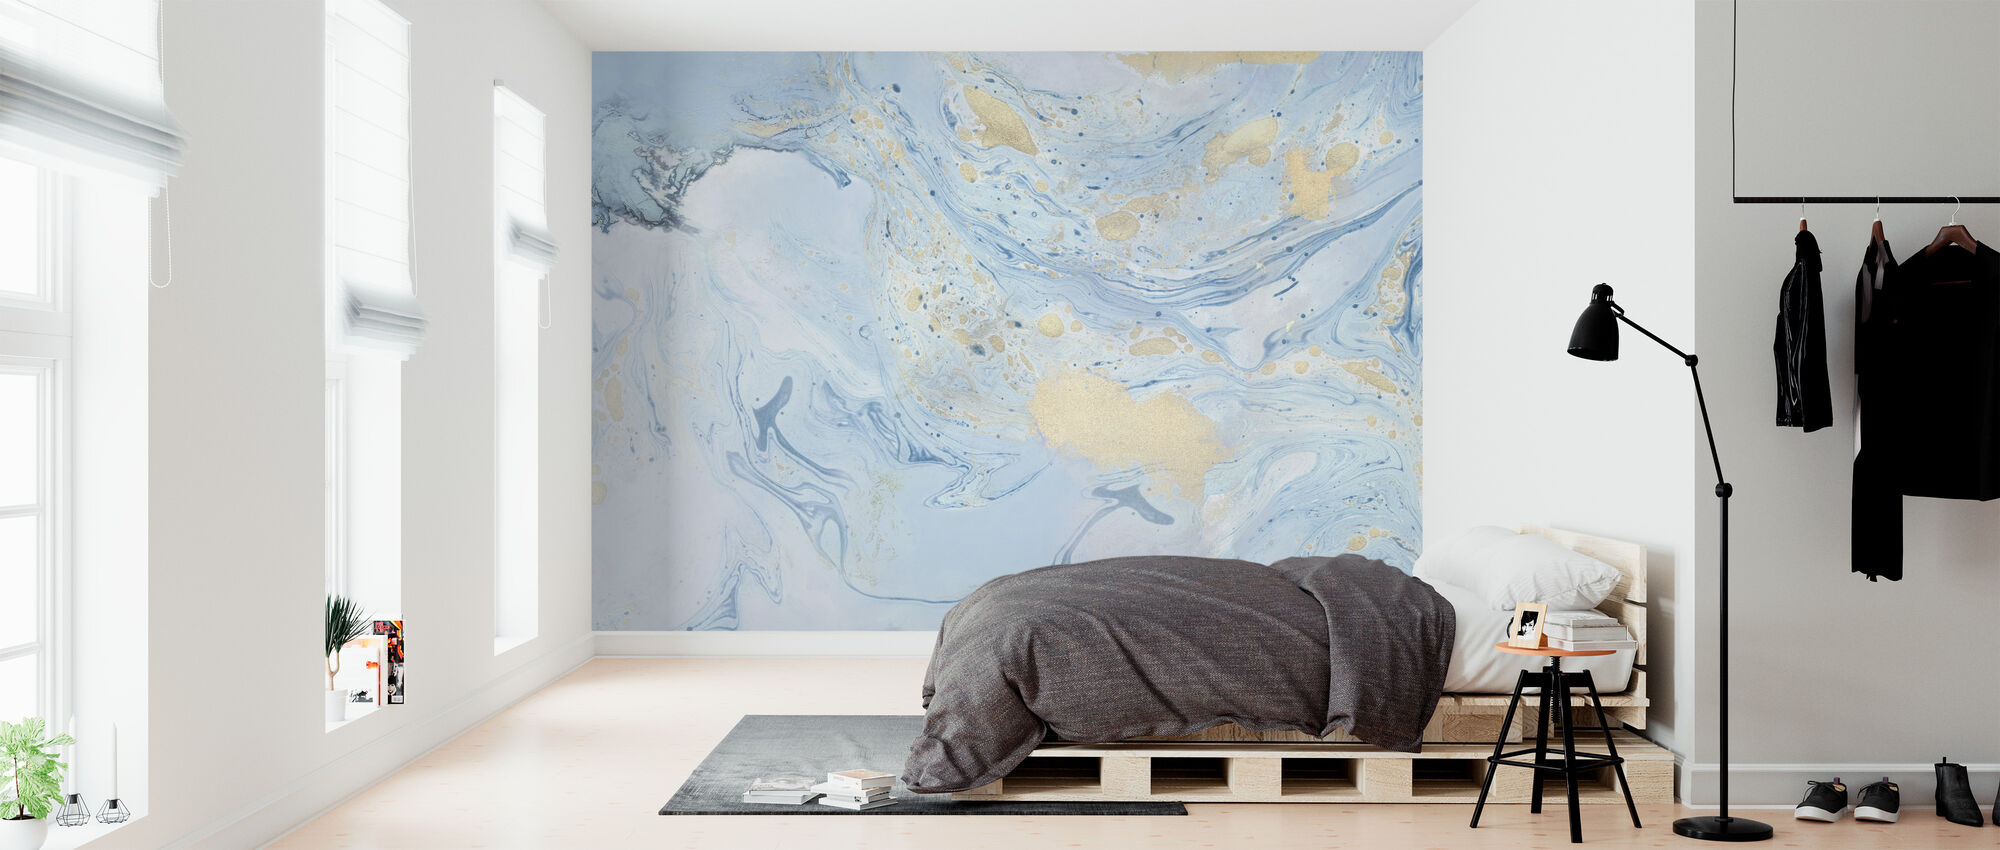 Marble Story - Wallpaper - Bedroom